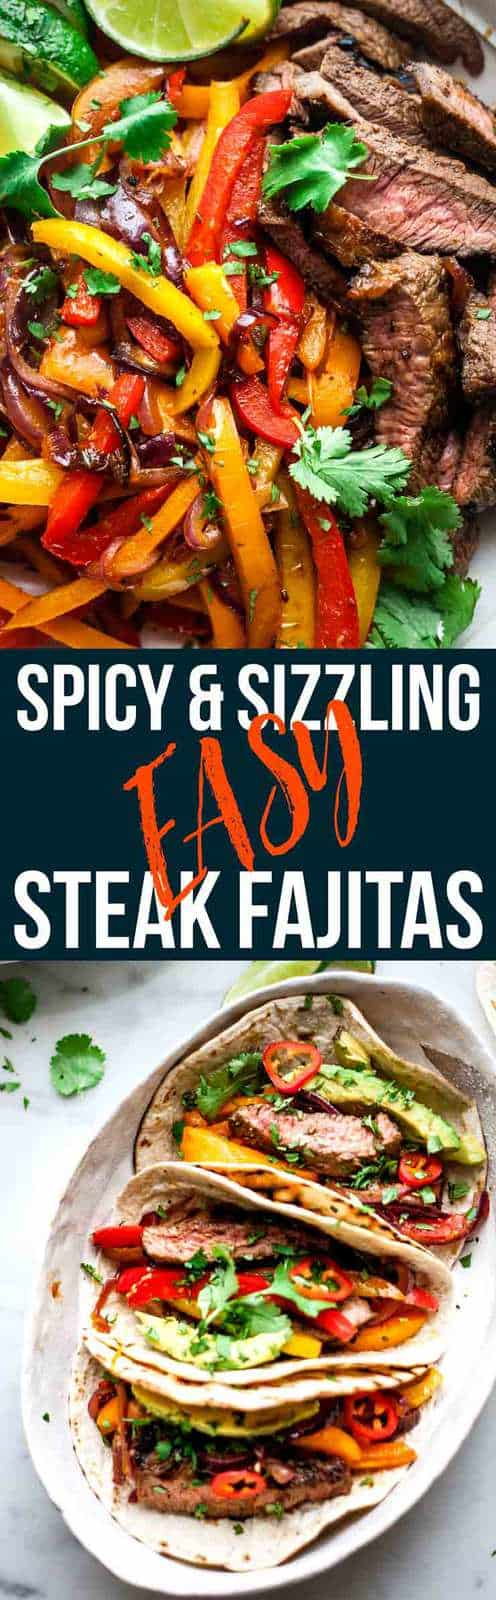 These easy beef fajitas will be a new family classic. Tender and juicy beef steak in a smokey and spicy homemade marinated. Grilled beef and veggies wrapped in soft tortillas with avocado and lime. Kitchen tested, family approved.